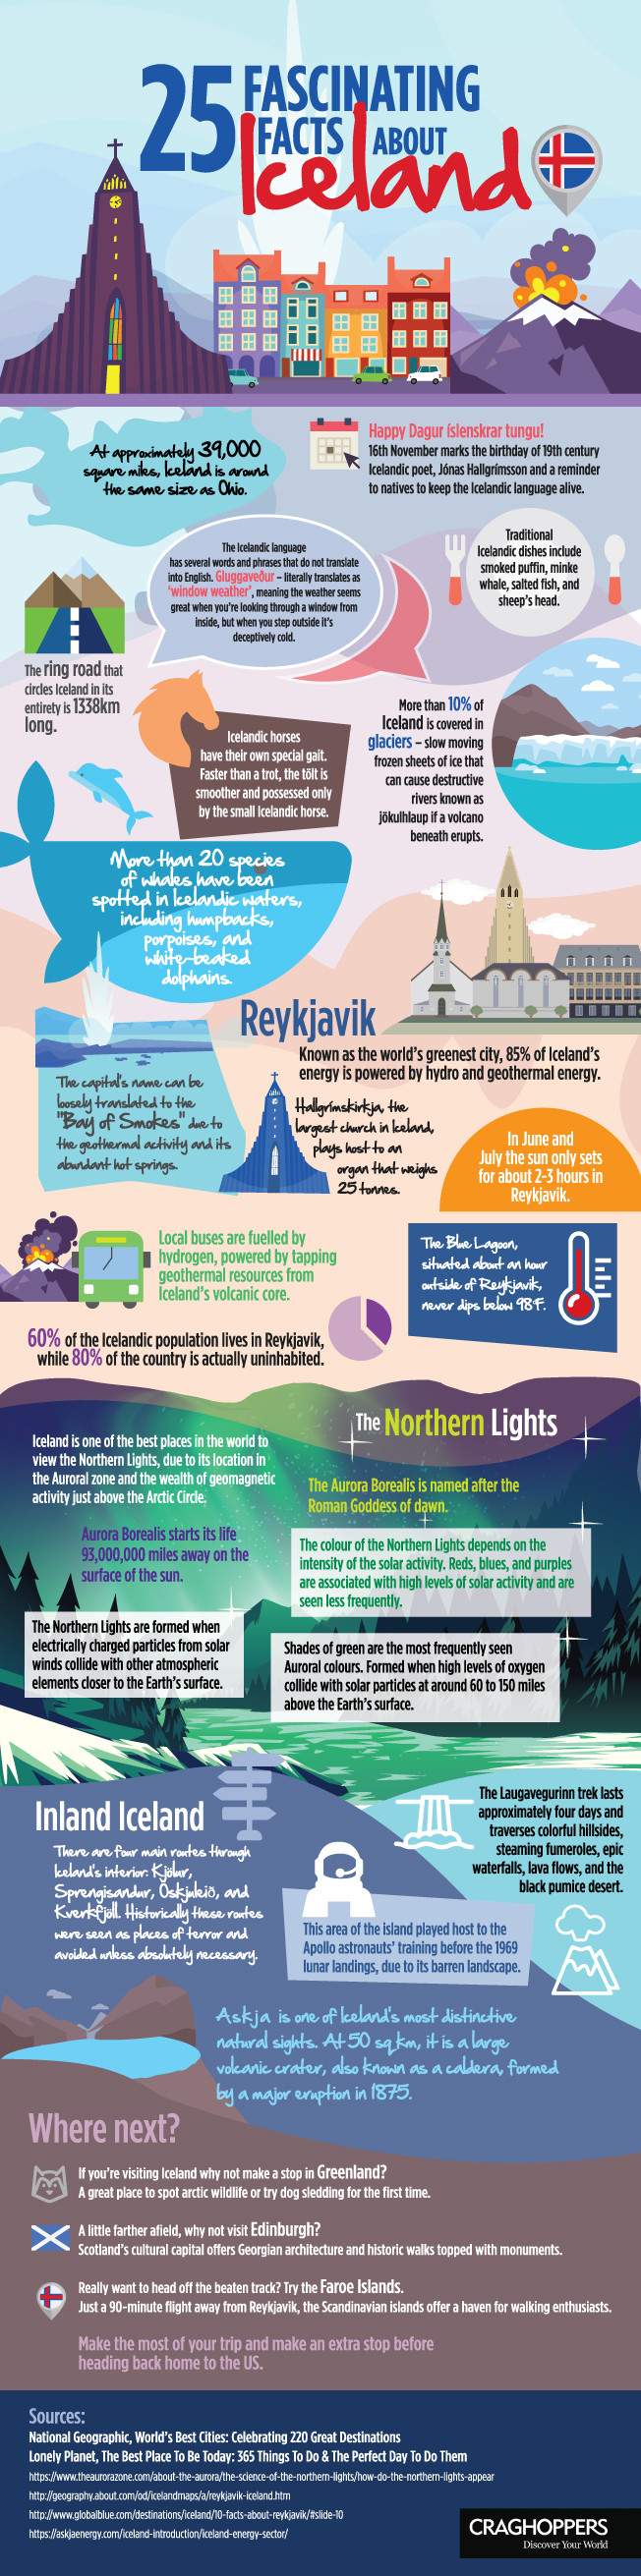 25 Fascinating Facts About Iceland